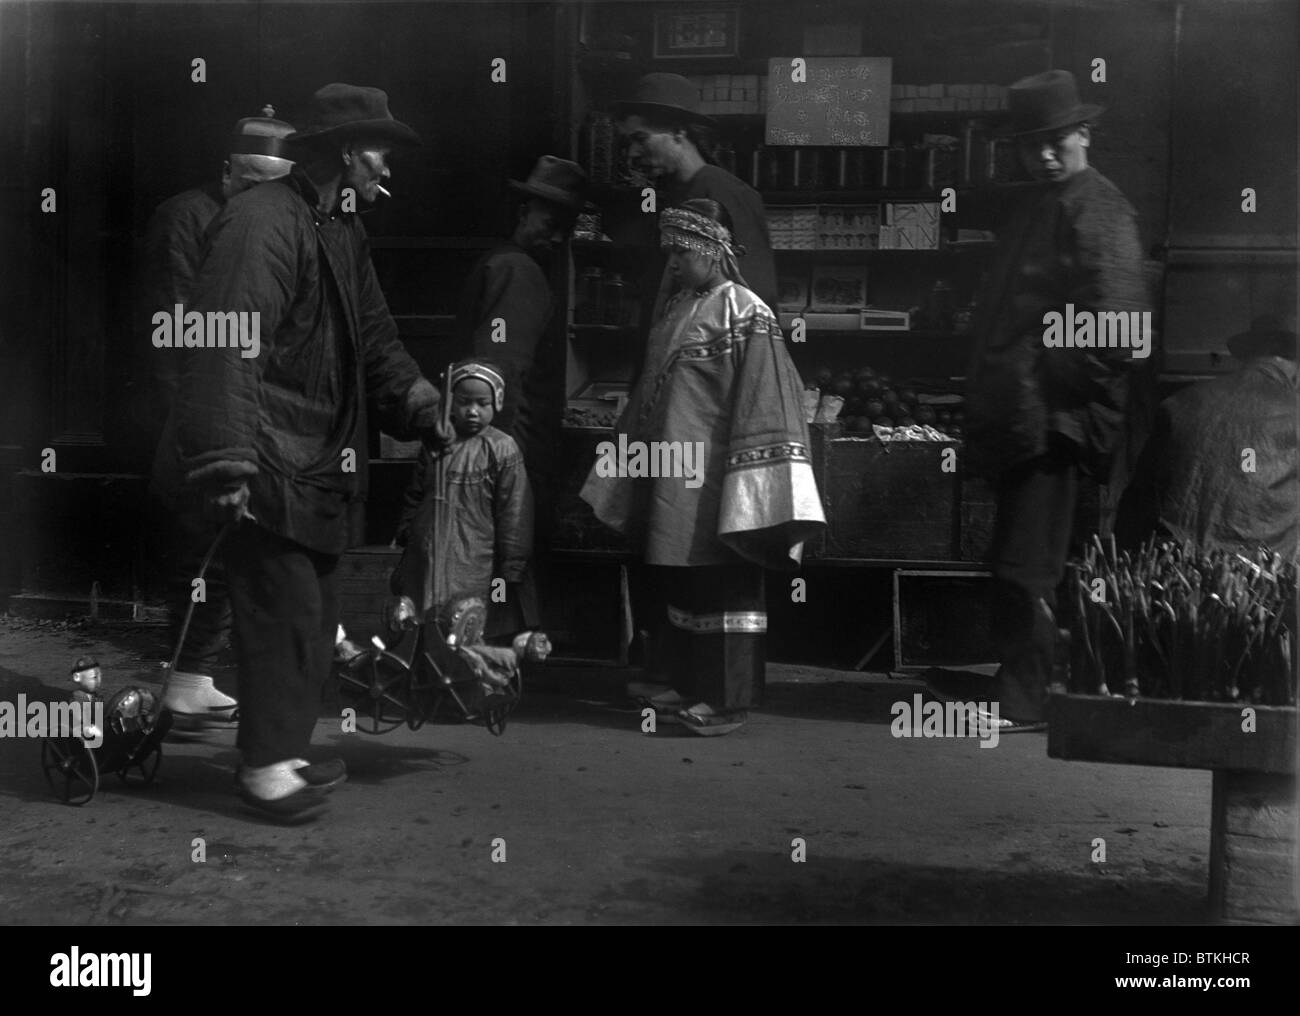 THE TOY PEDDLER. Chinese immigrants in San Francisco. From Arnold Genthe's CHINATOWN SERIES. Ca. 1896. - Stock Image